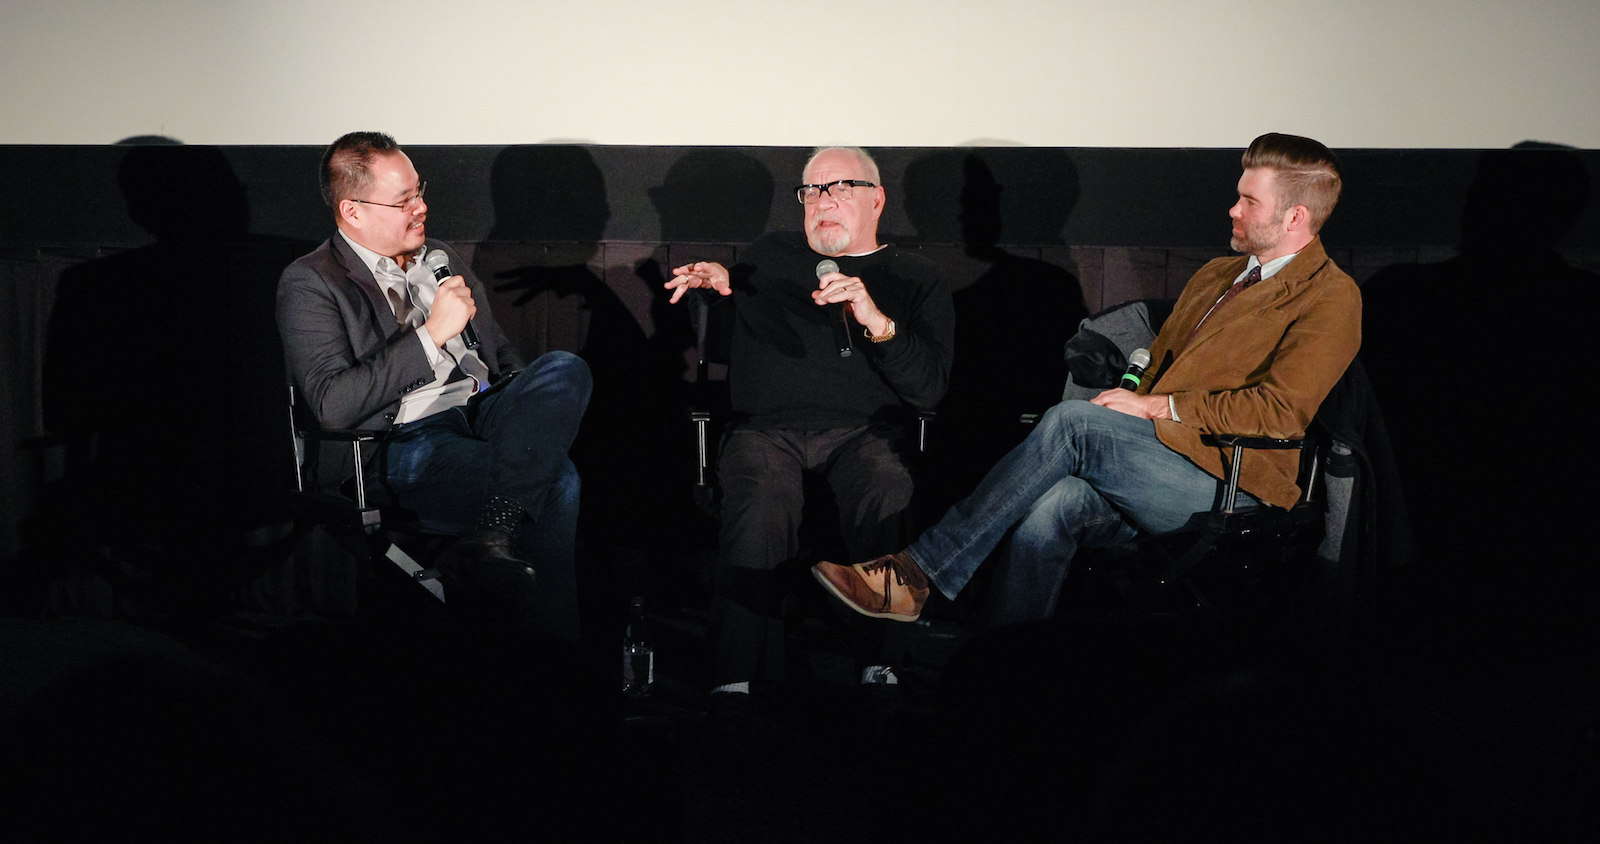 Justin Chang, Paul Schrader, and Kutter Callaway discussing First Reformed